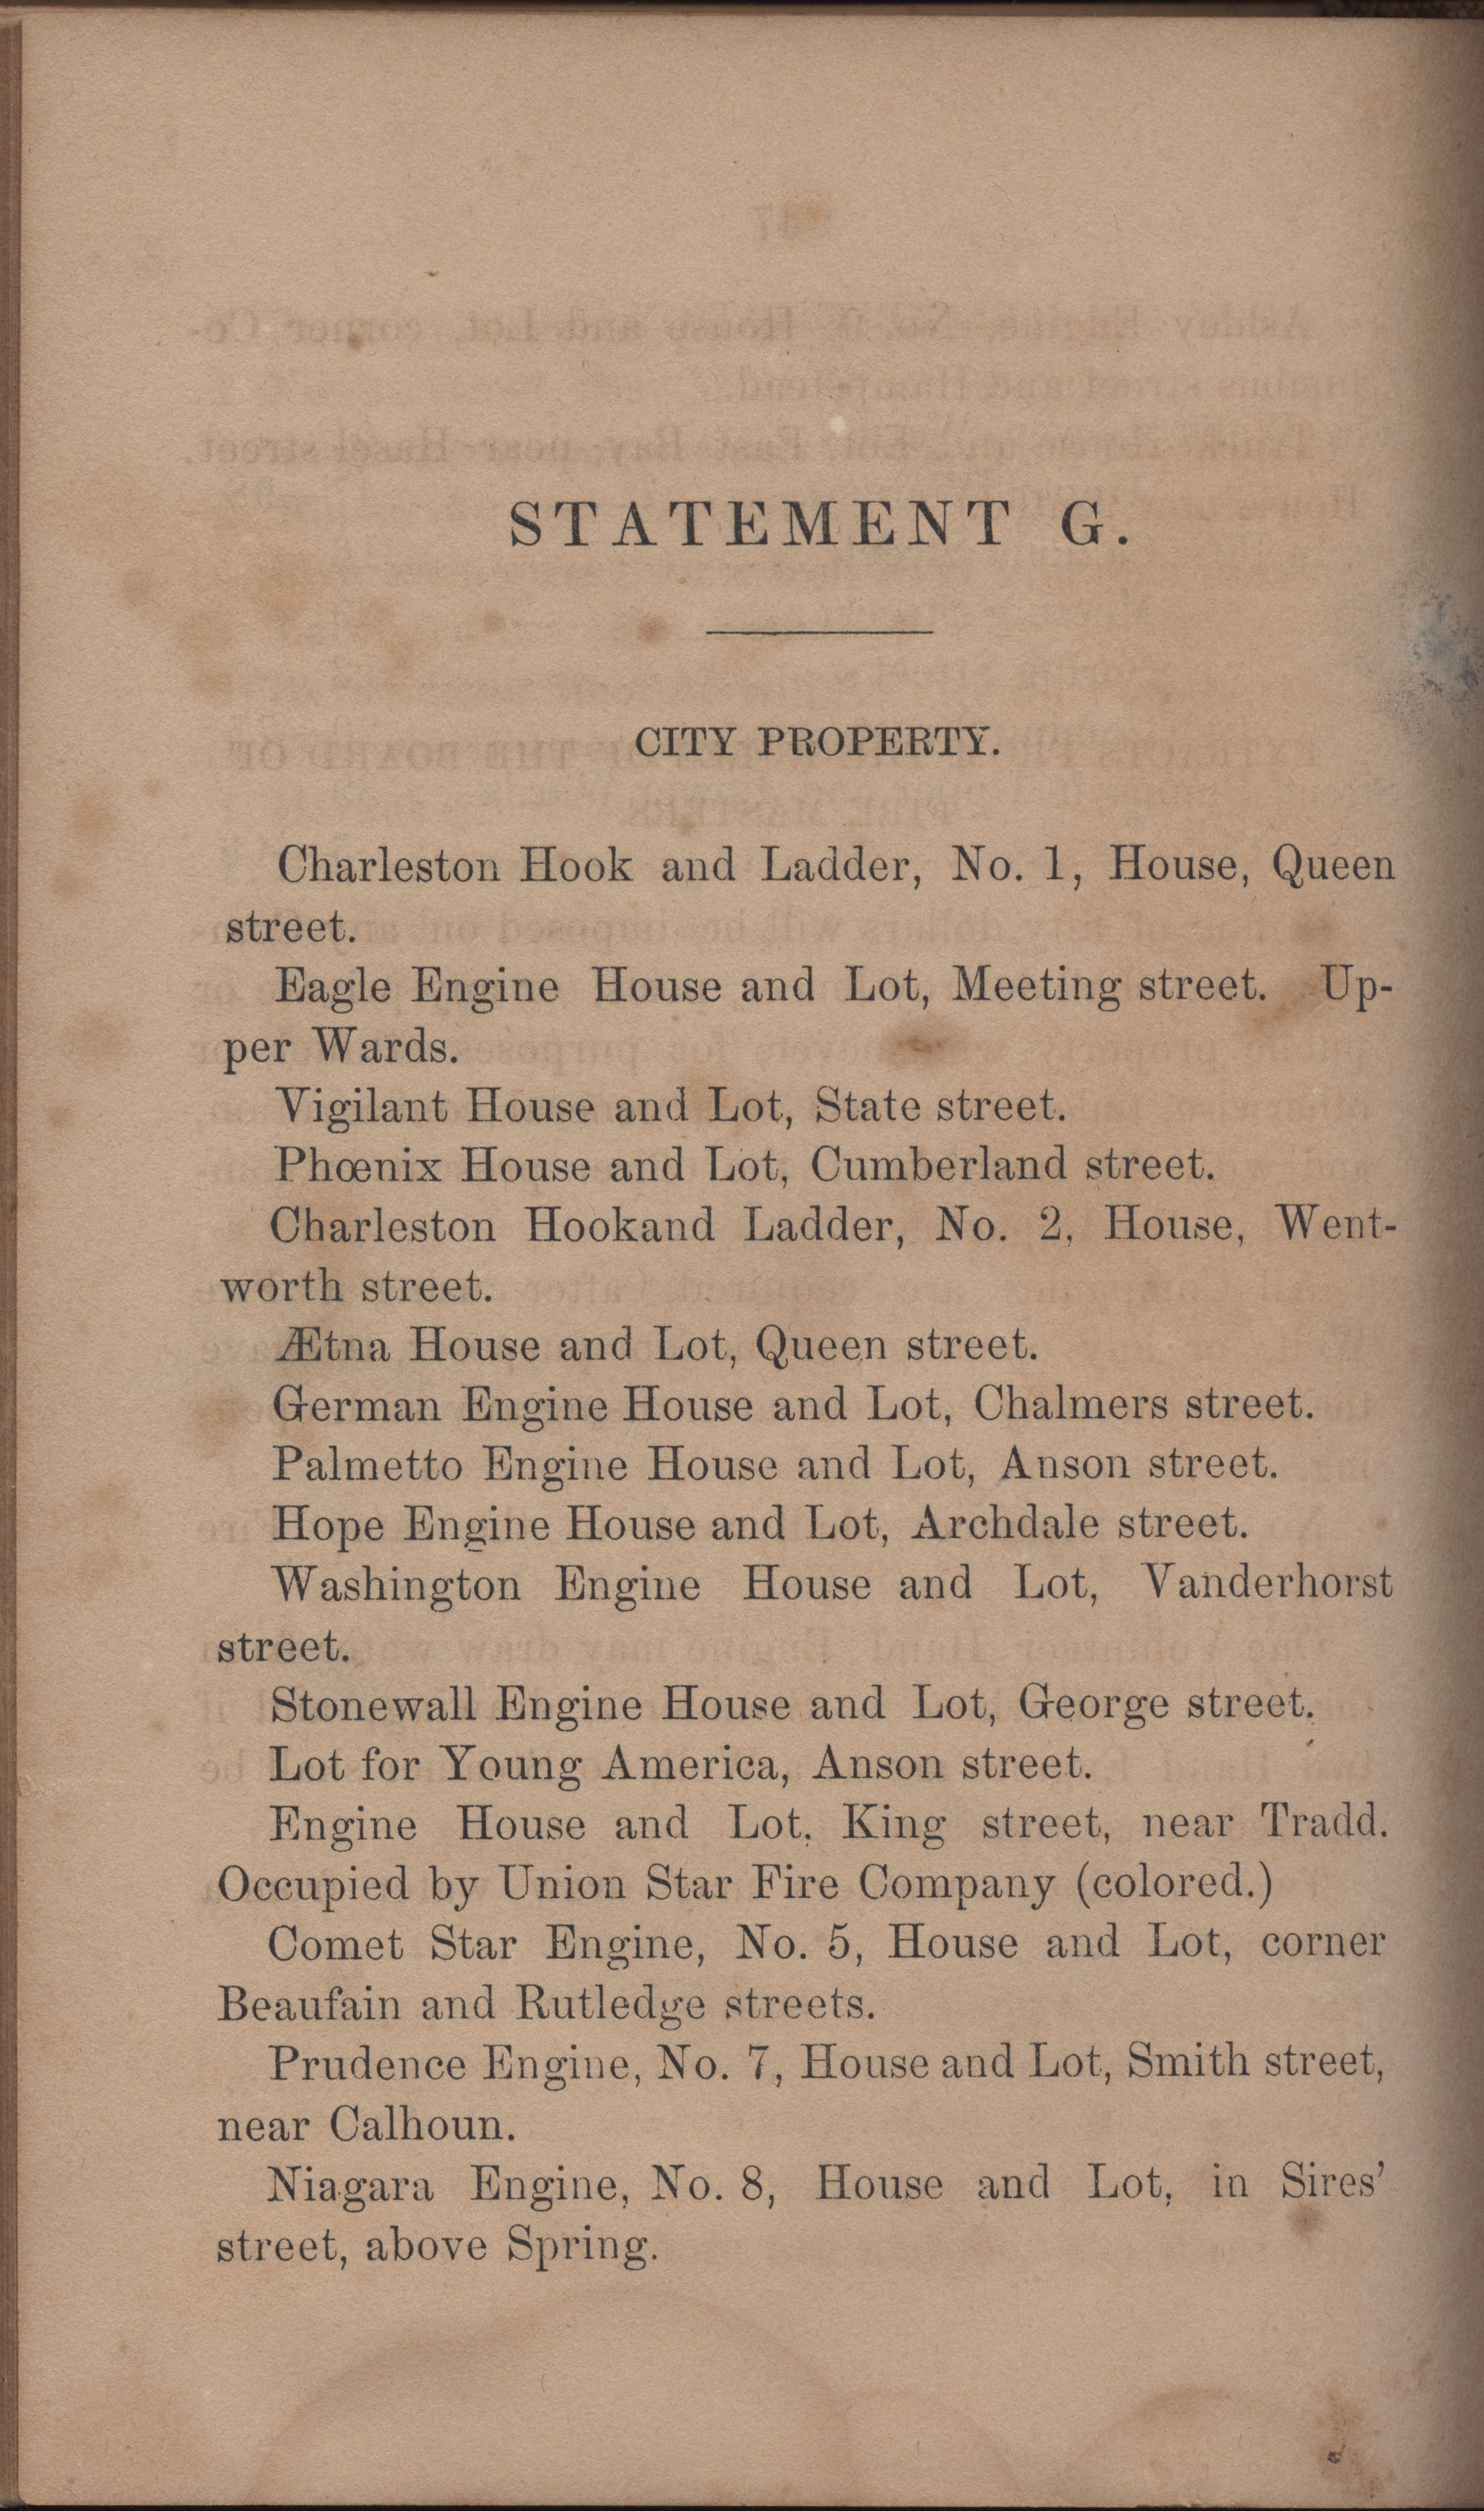 Annual Report of the Chief of the Fire Department of the City of Charleston, page 393